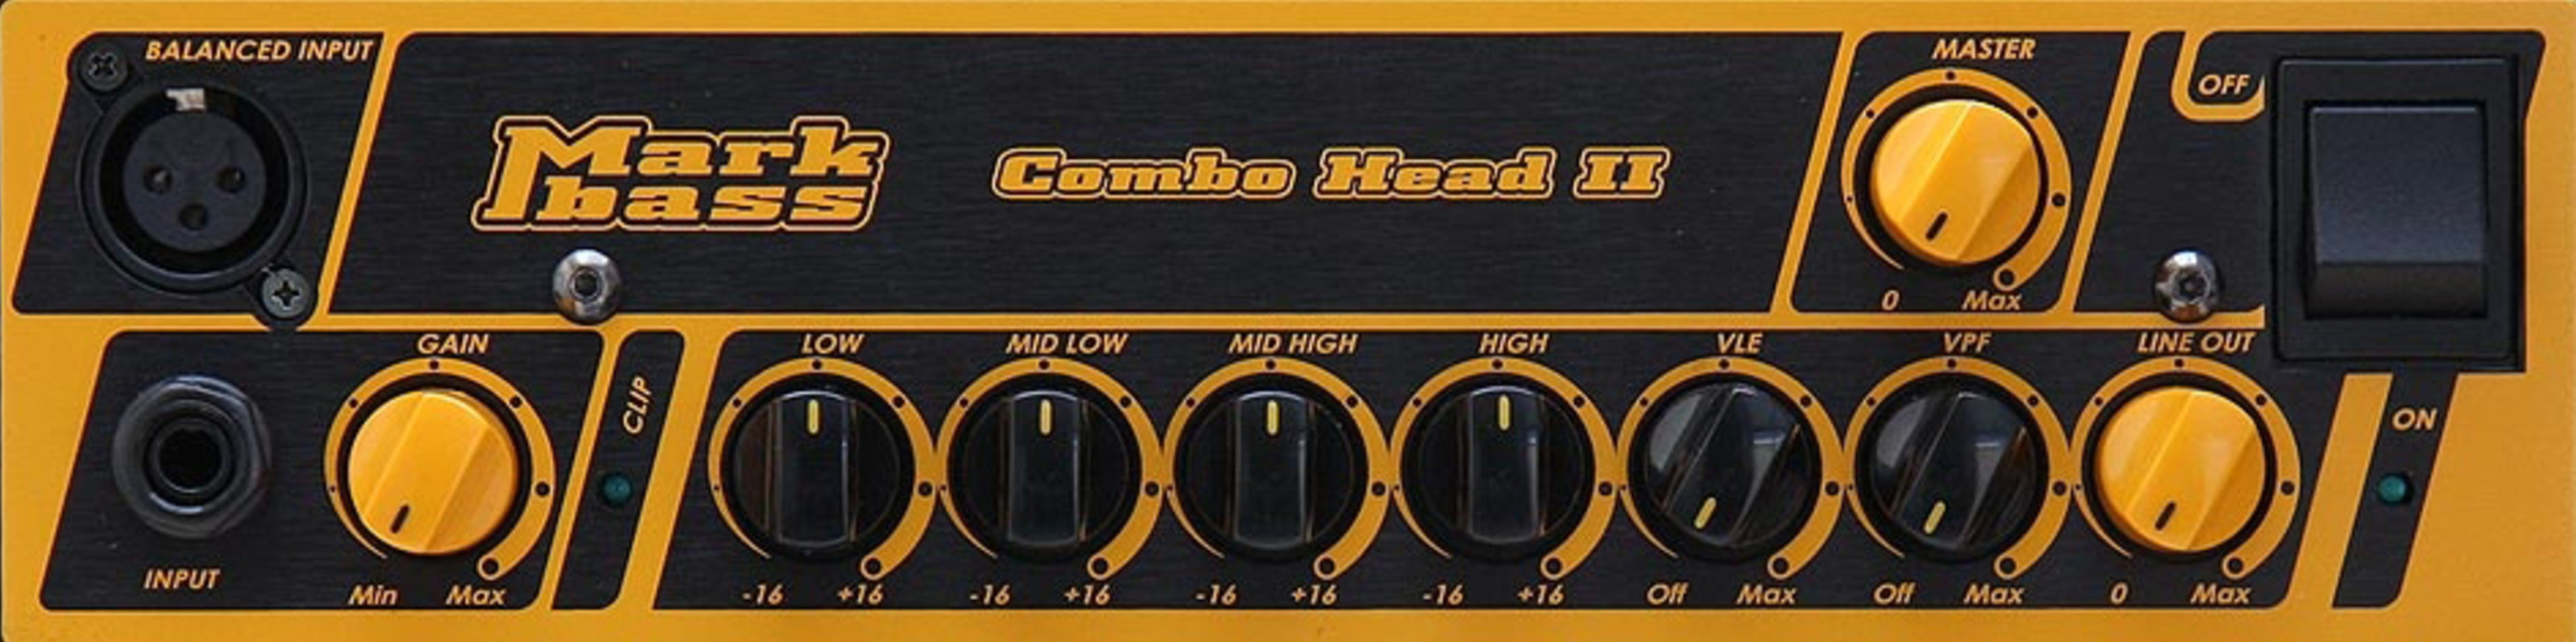 MARKBASS CMD 151 JB LM3 Combo Front Panel